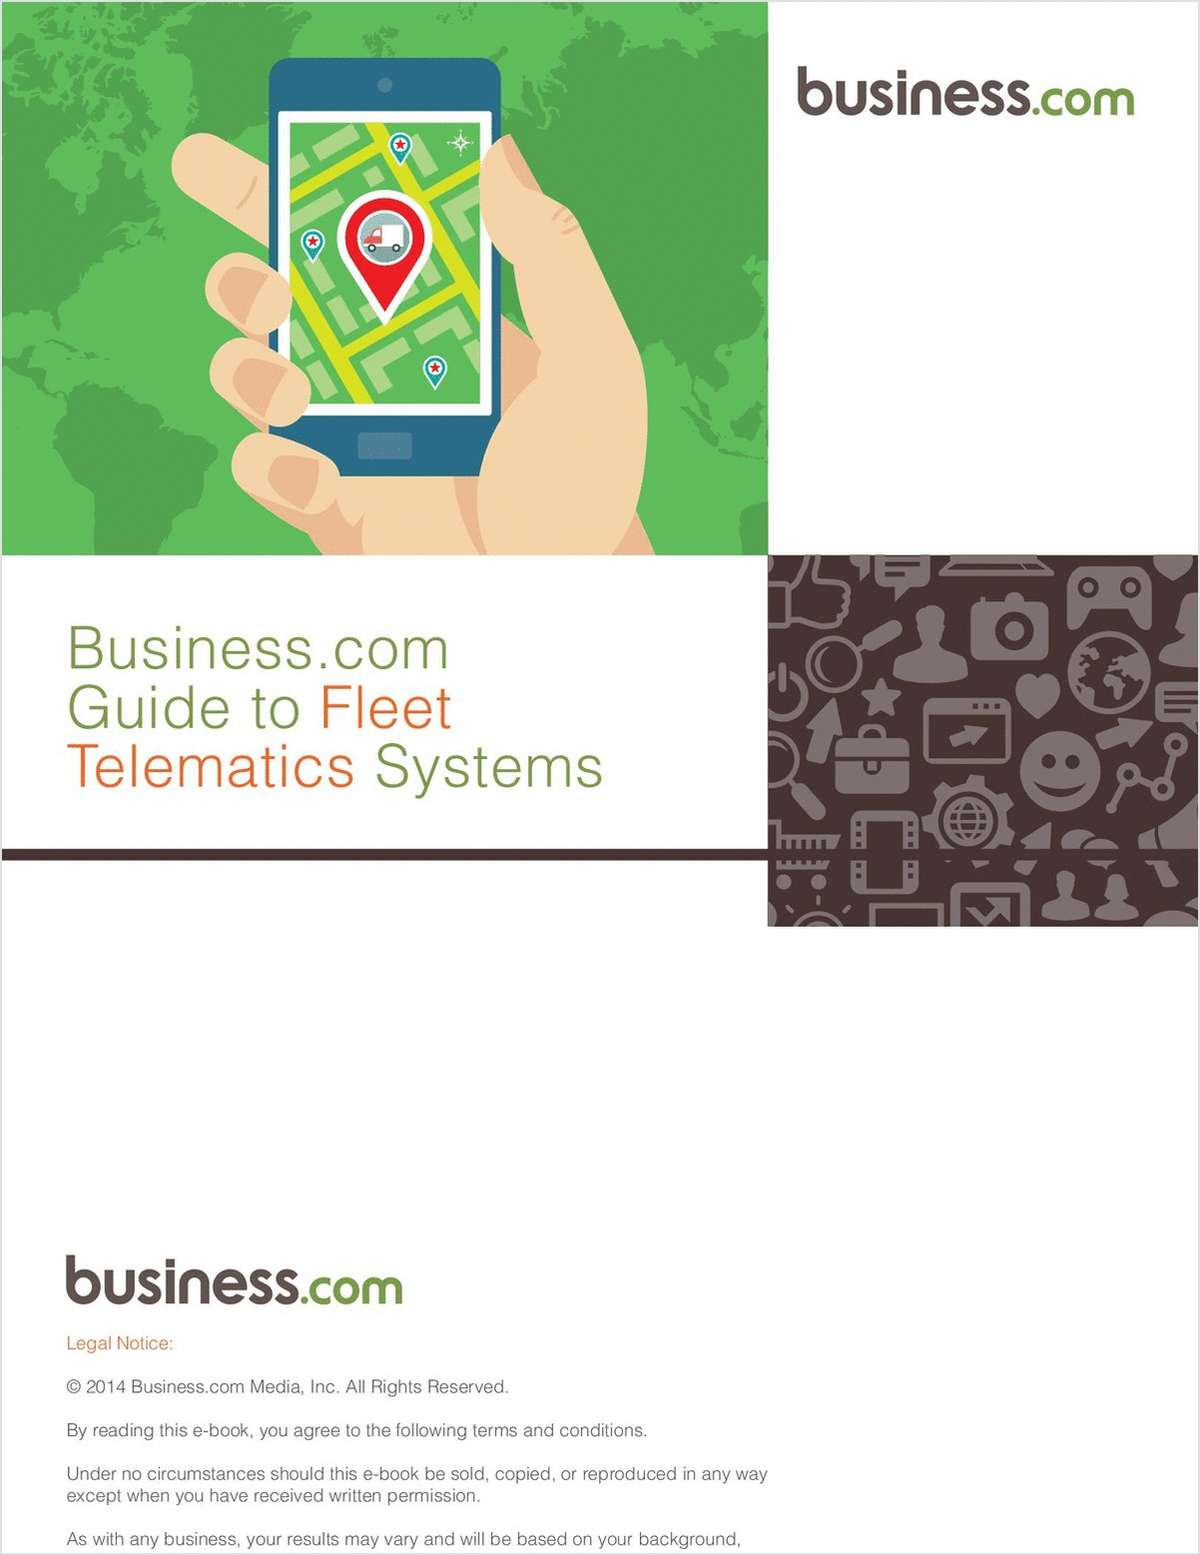 How Fleet Telematics Systems Are Helping Businesses Monitor Their Fleet's Status